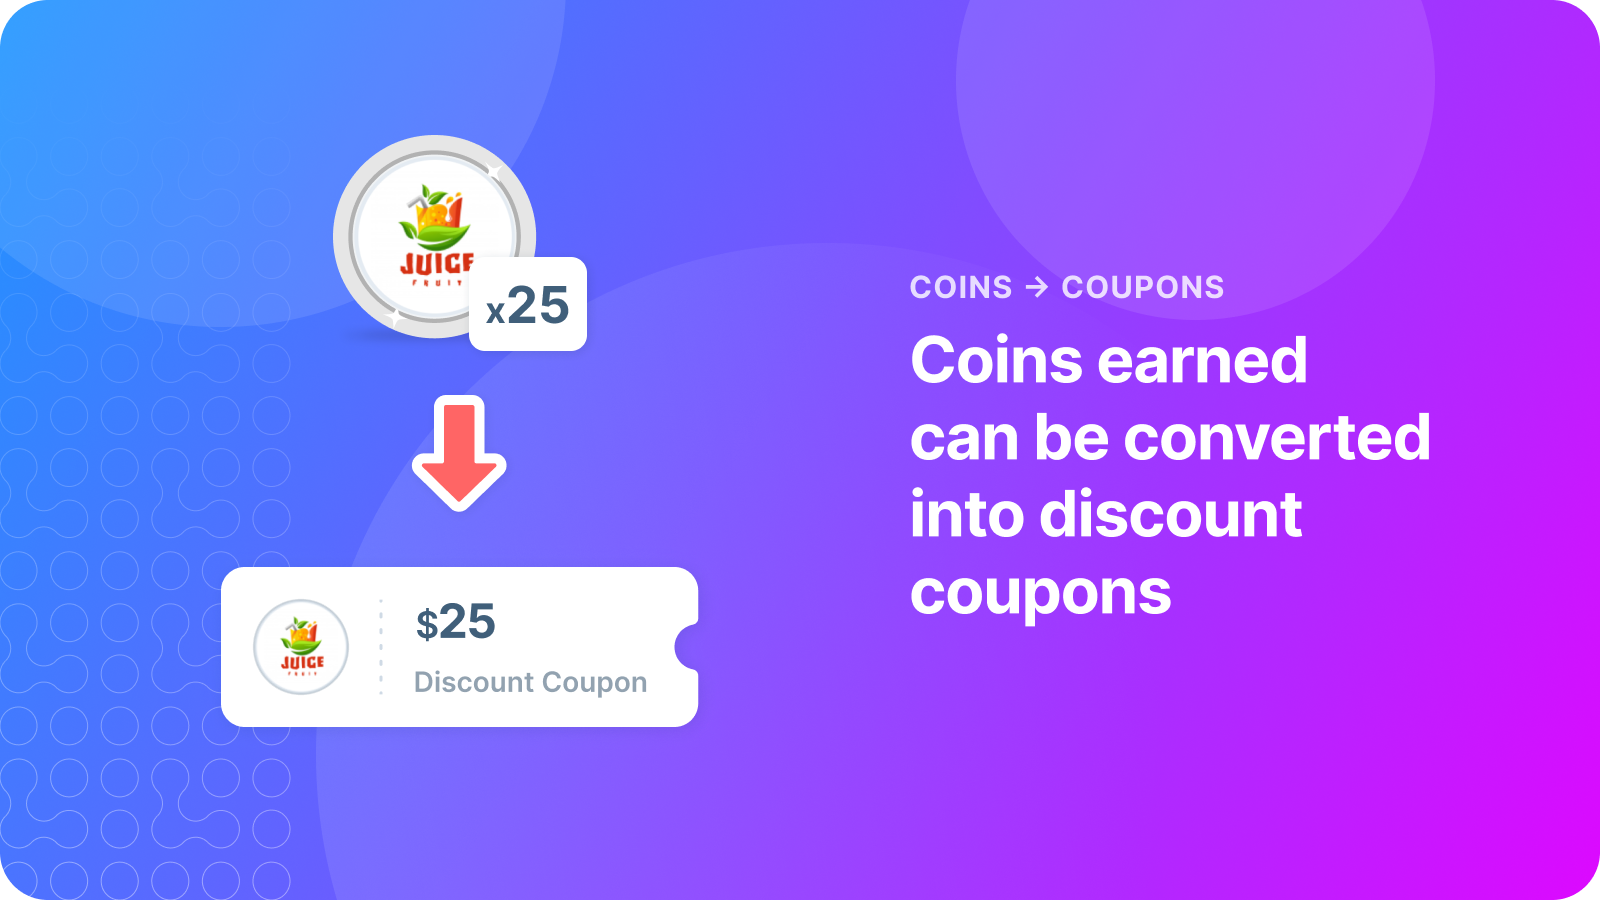 Coins earned can be converted into discount coupons